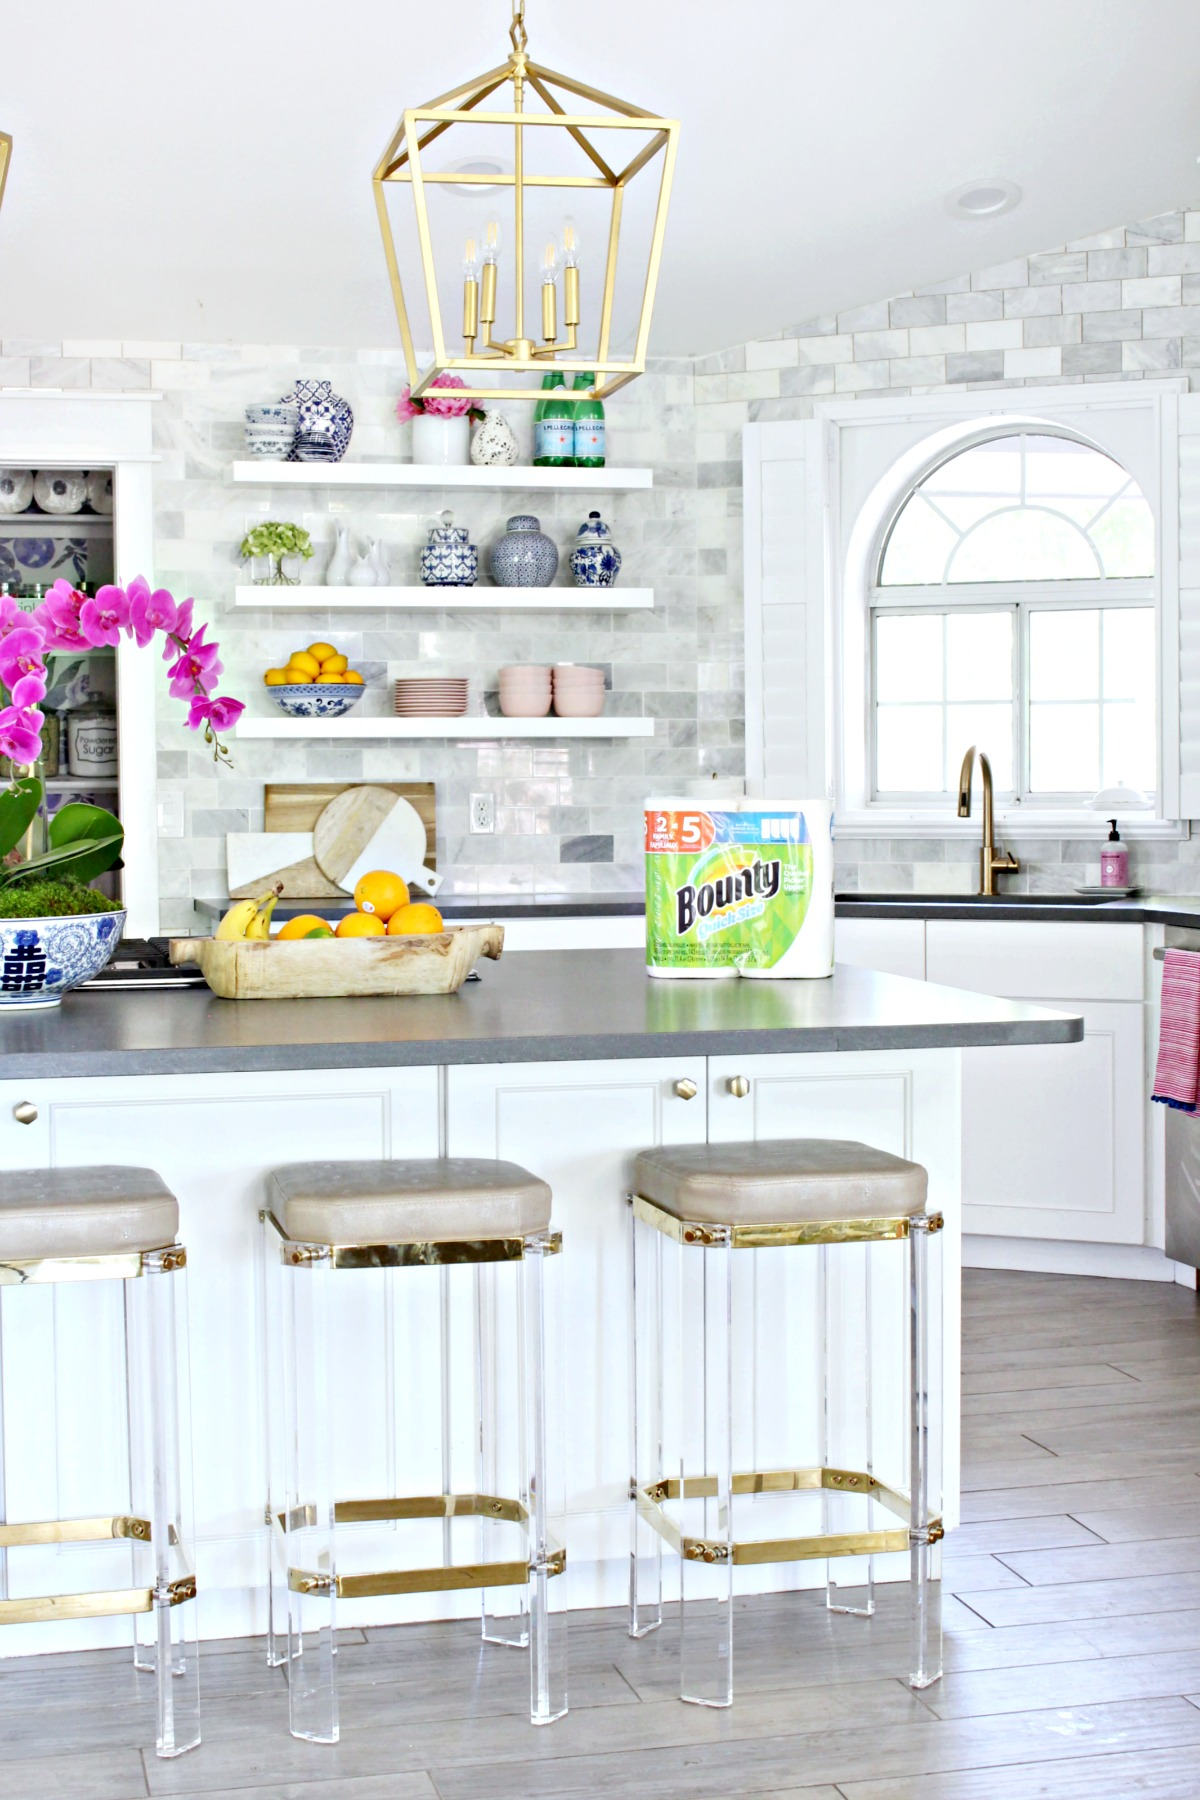 Daily Kitchen Cleaning Checklist - Classy Clutter